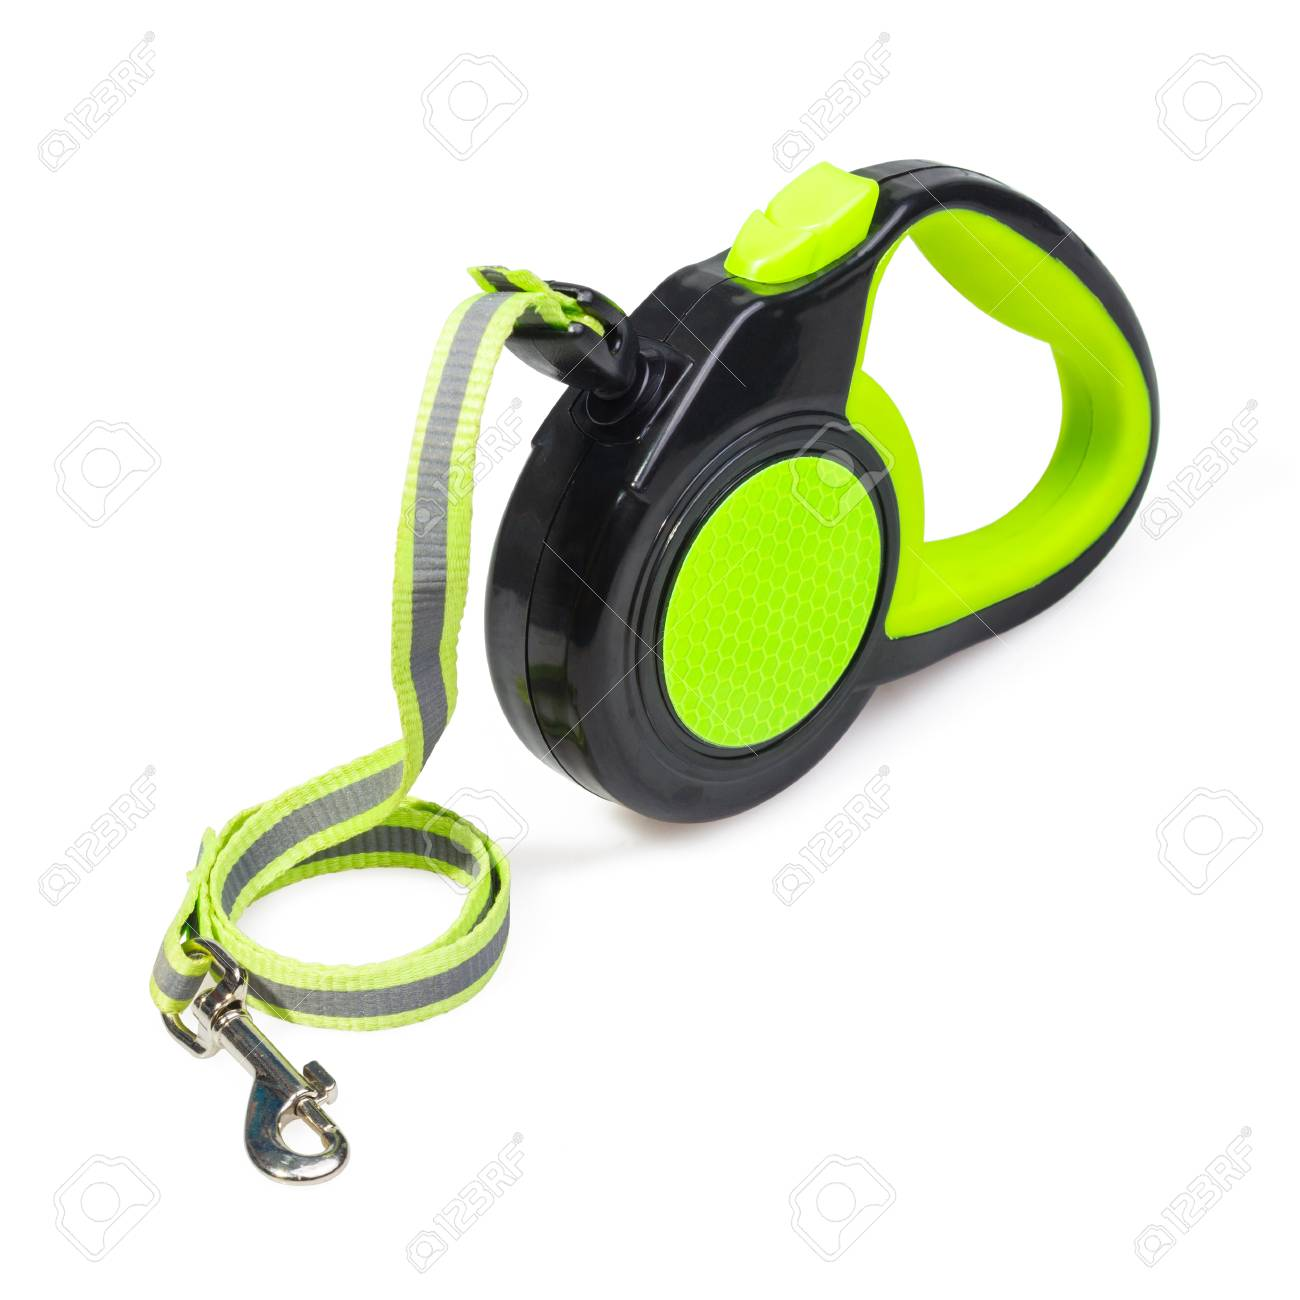 Green/Black retractable leash for dog isolated on white background - 105338138